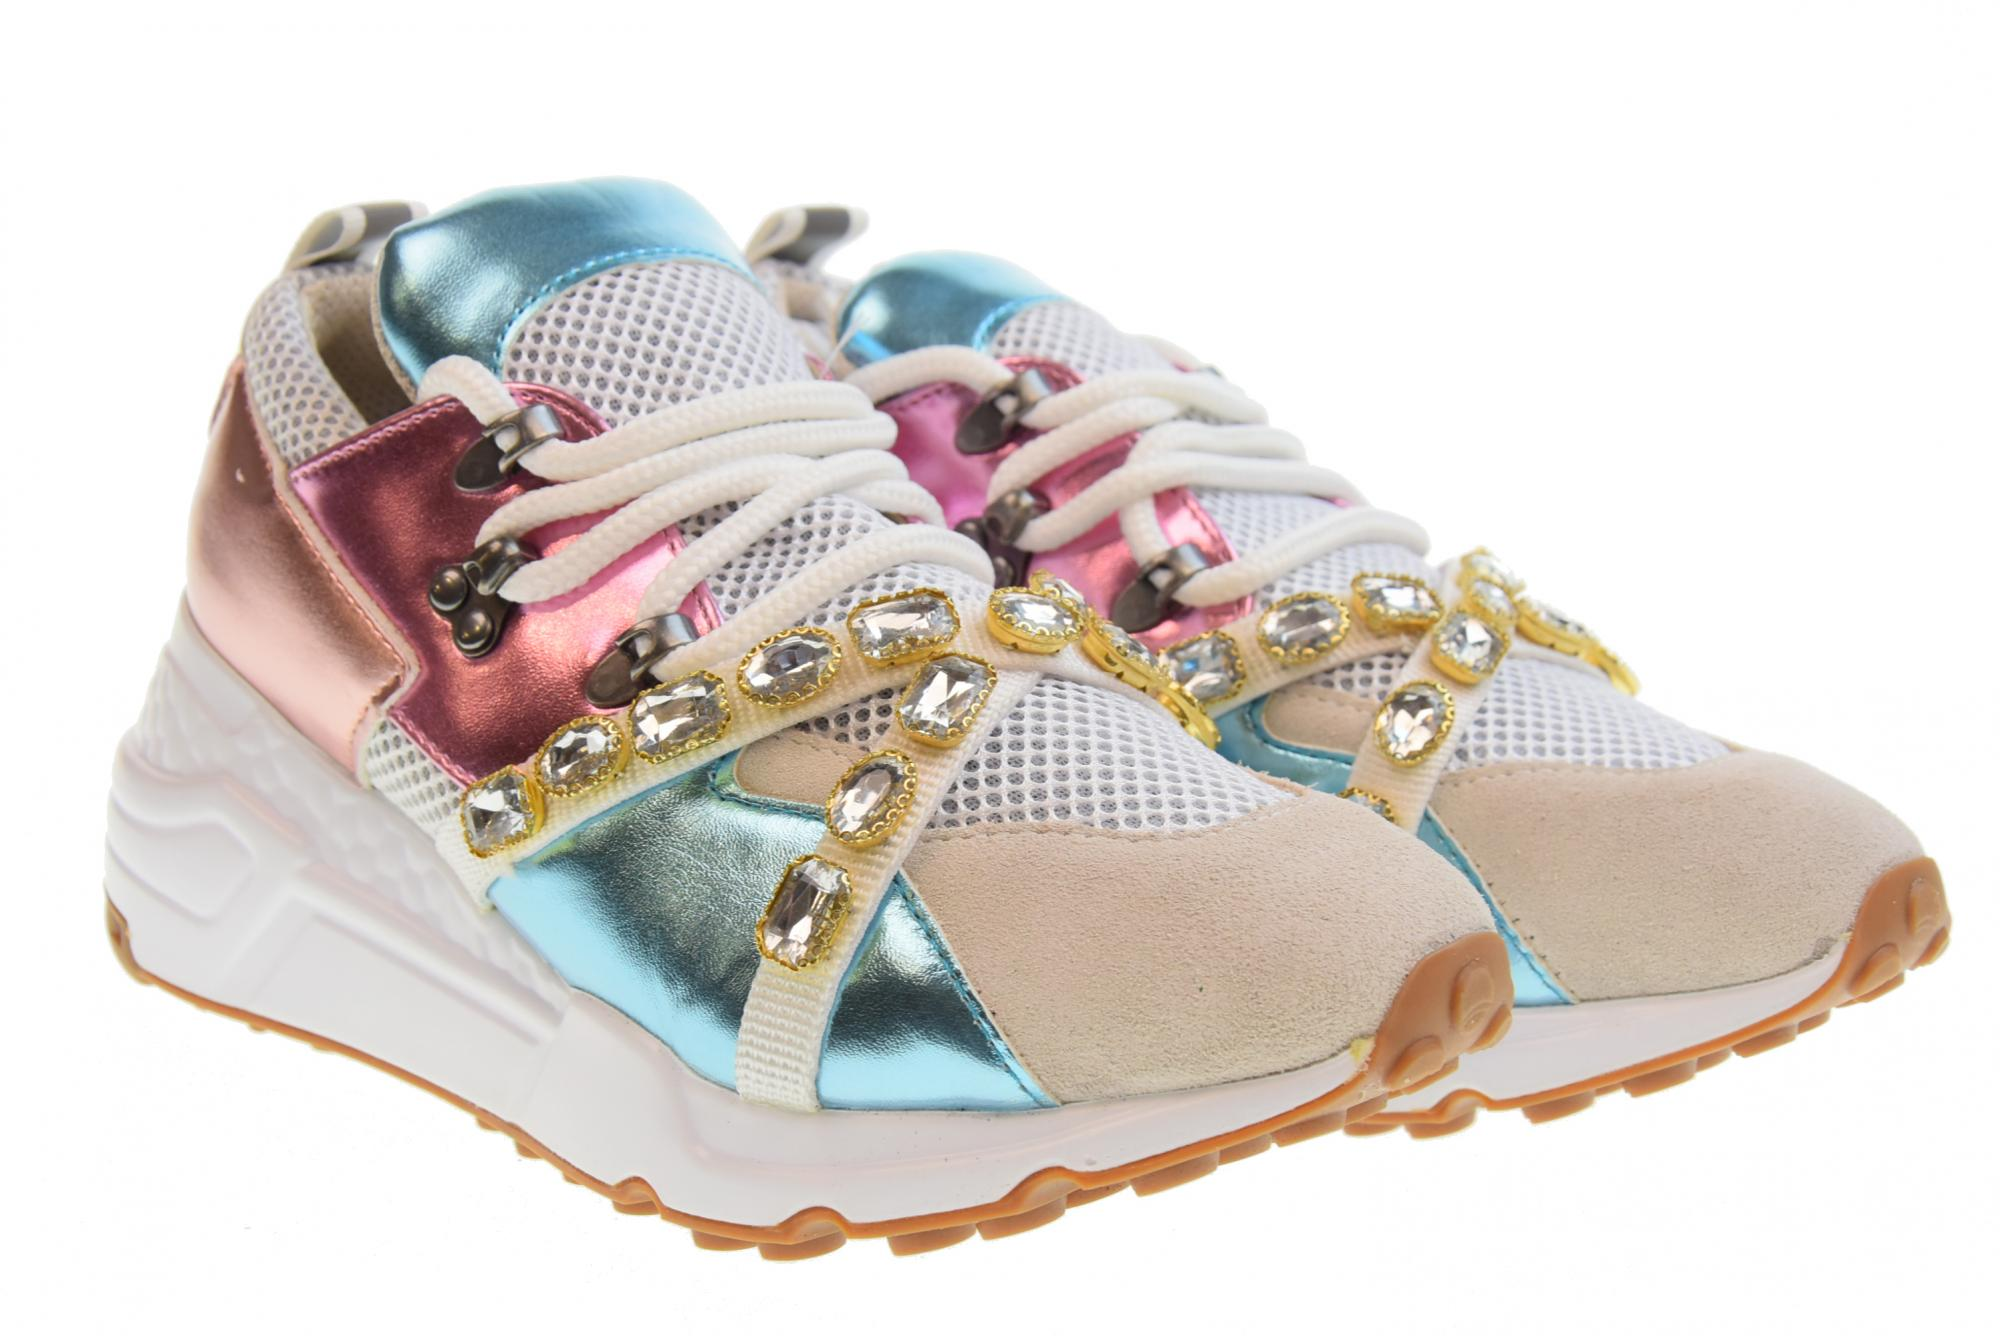 76bf55141d0 Details about Steve Madden P19u shoes woman sneakers CREDIT METAL MULT